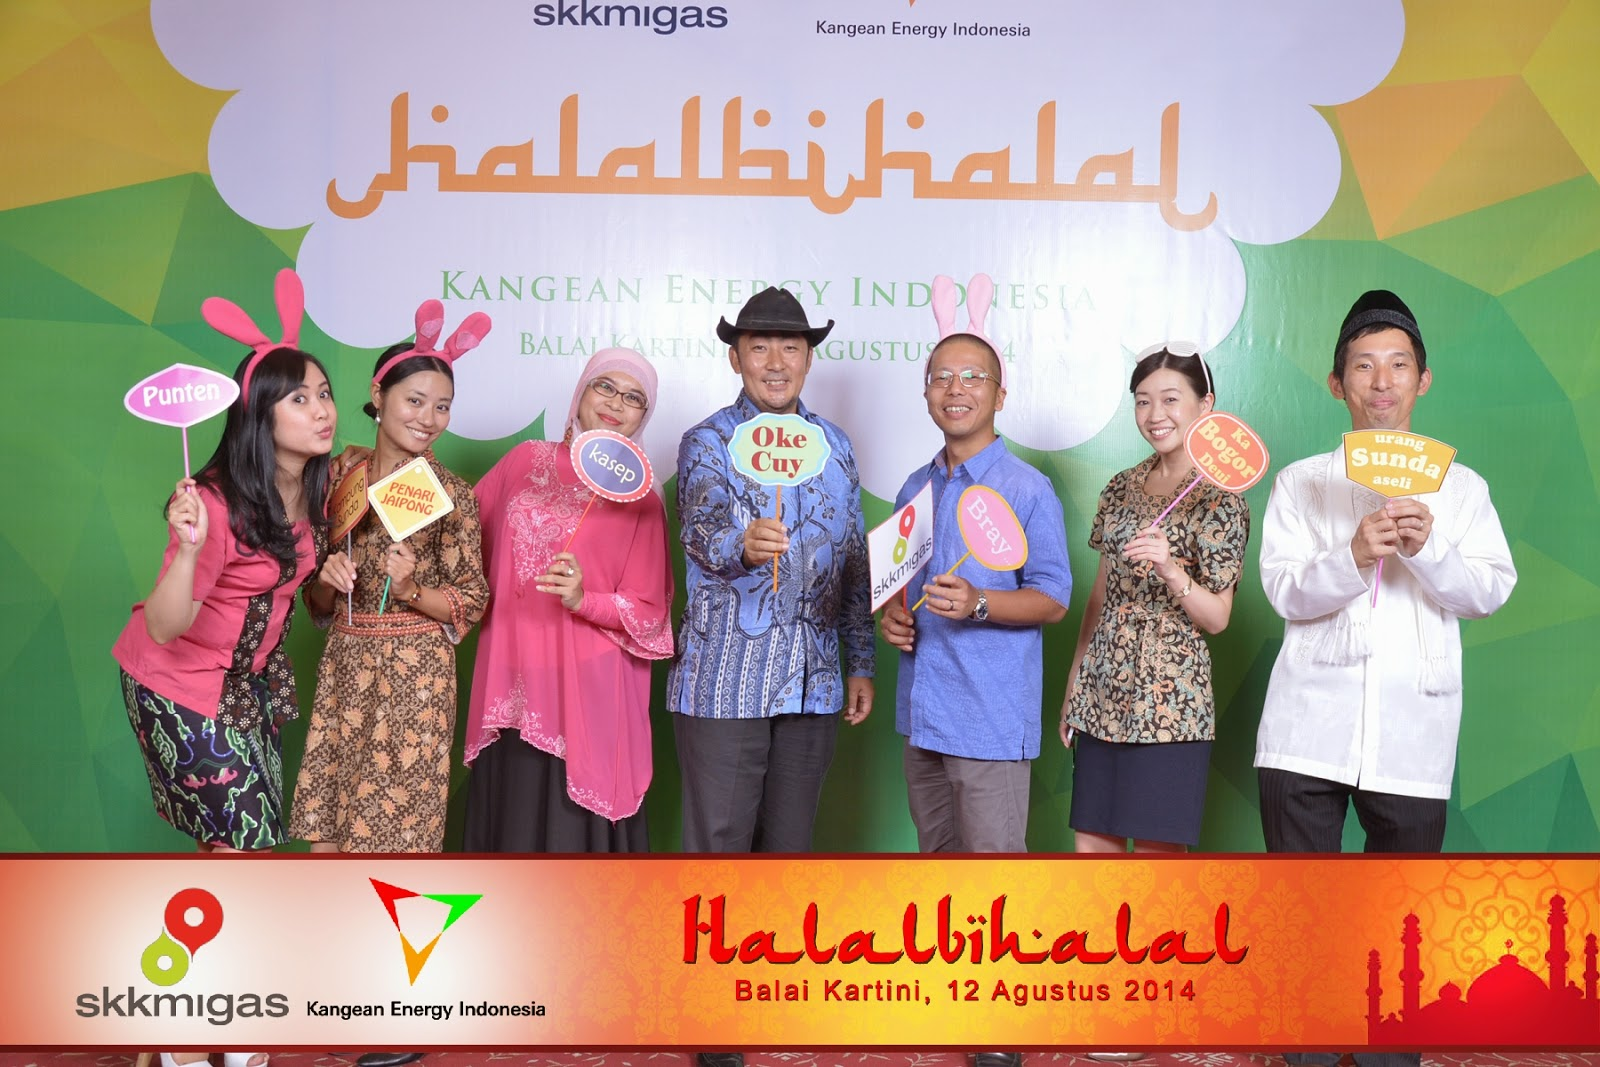 Photo Booth Event Halal Bihalal